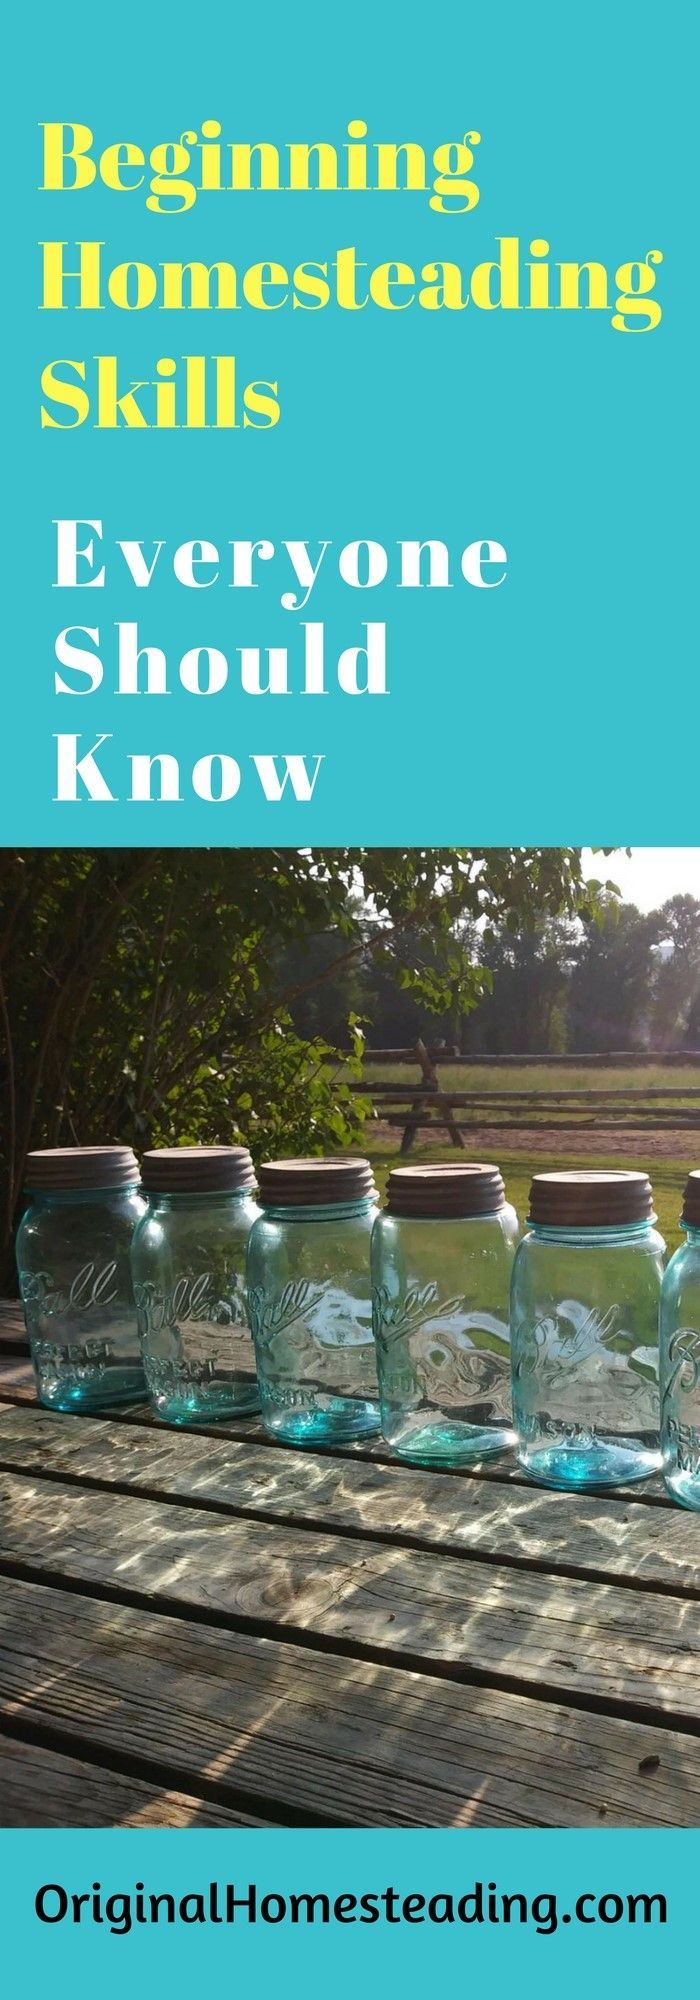 Have a Homesteading Mindset but No Homestead? Do Not Worry.....start learning and practicing Homesteading Skills today!!!